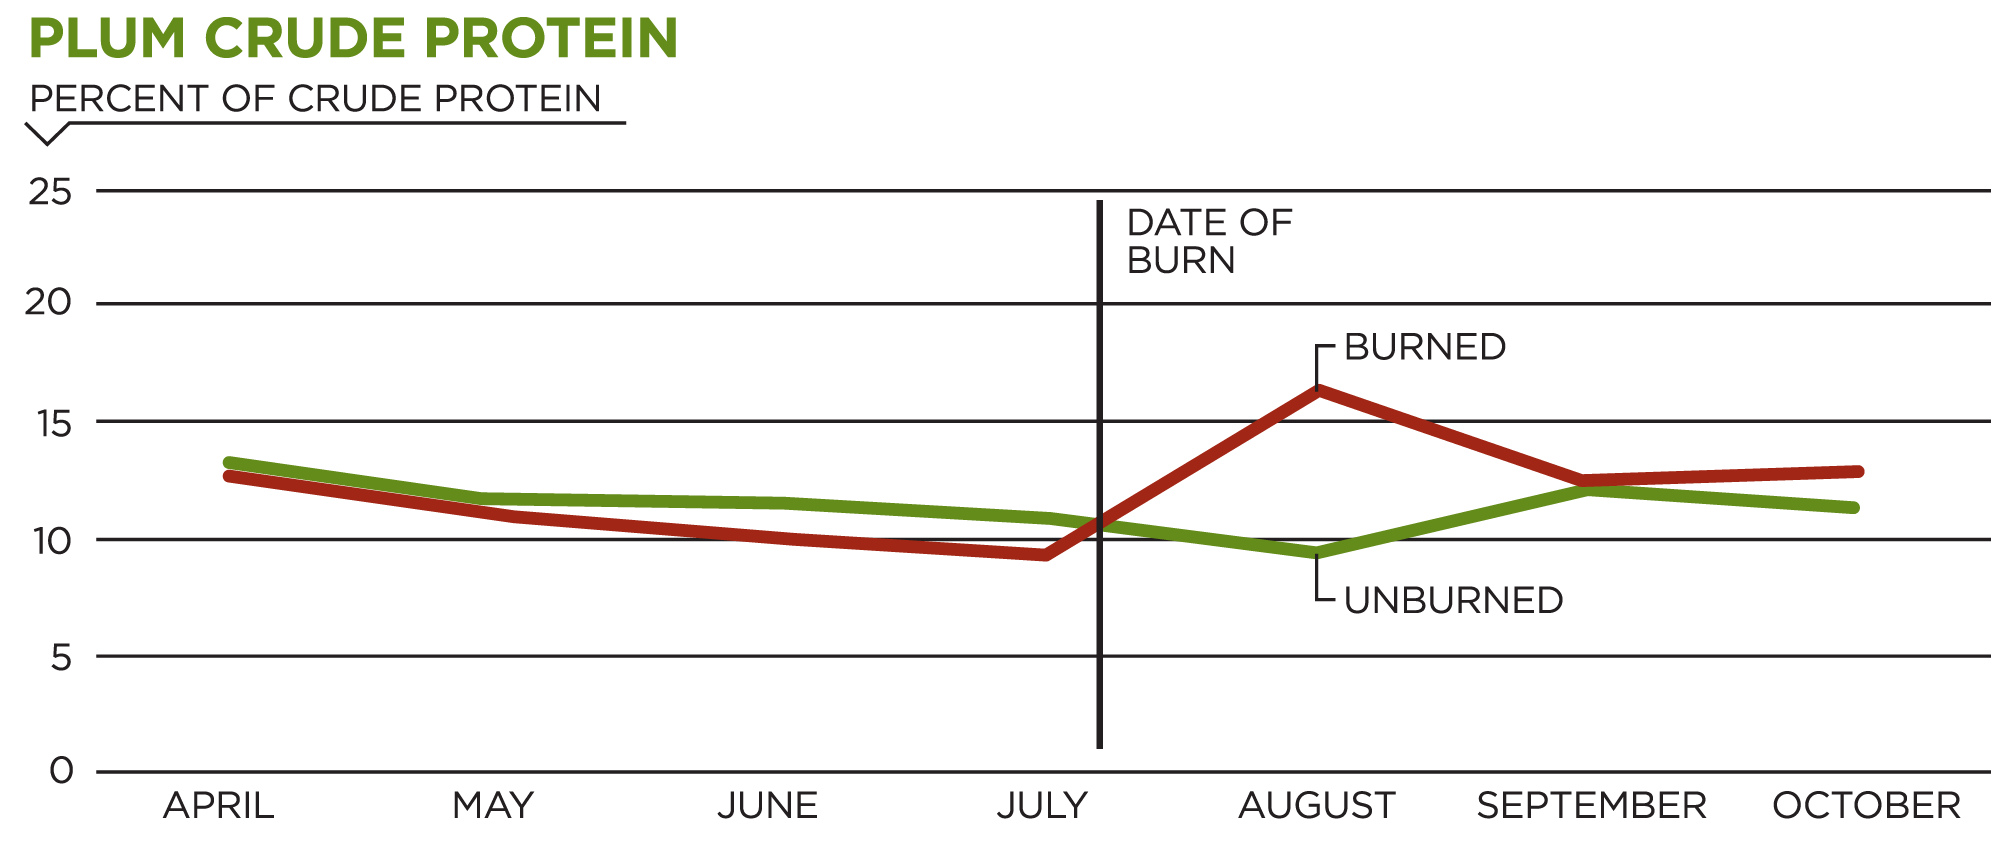 Plum Crude Protein Chart showing differences in crude protein in plants before and after growing season prescribed burns.